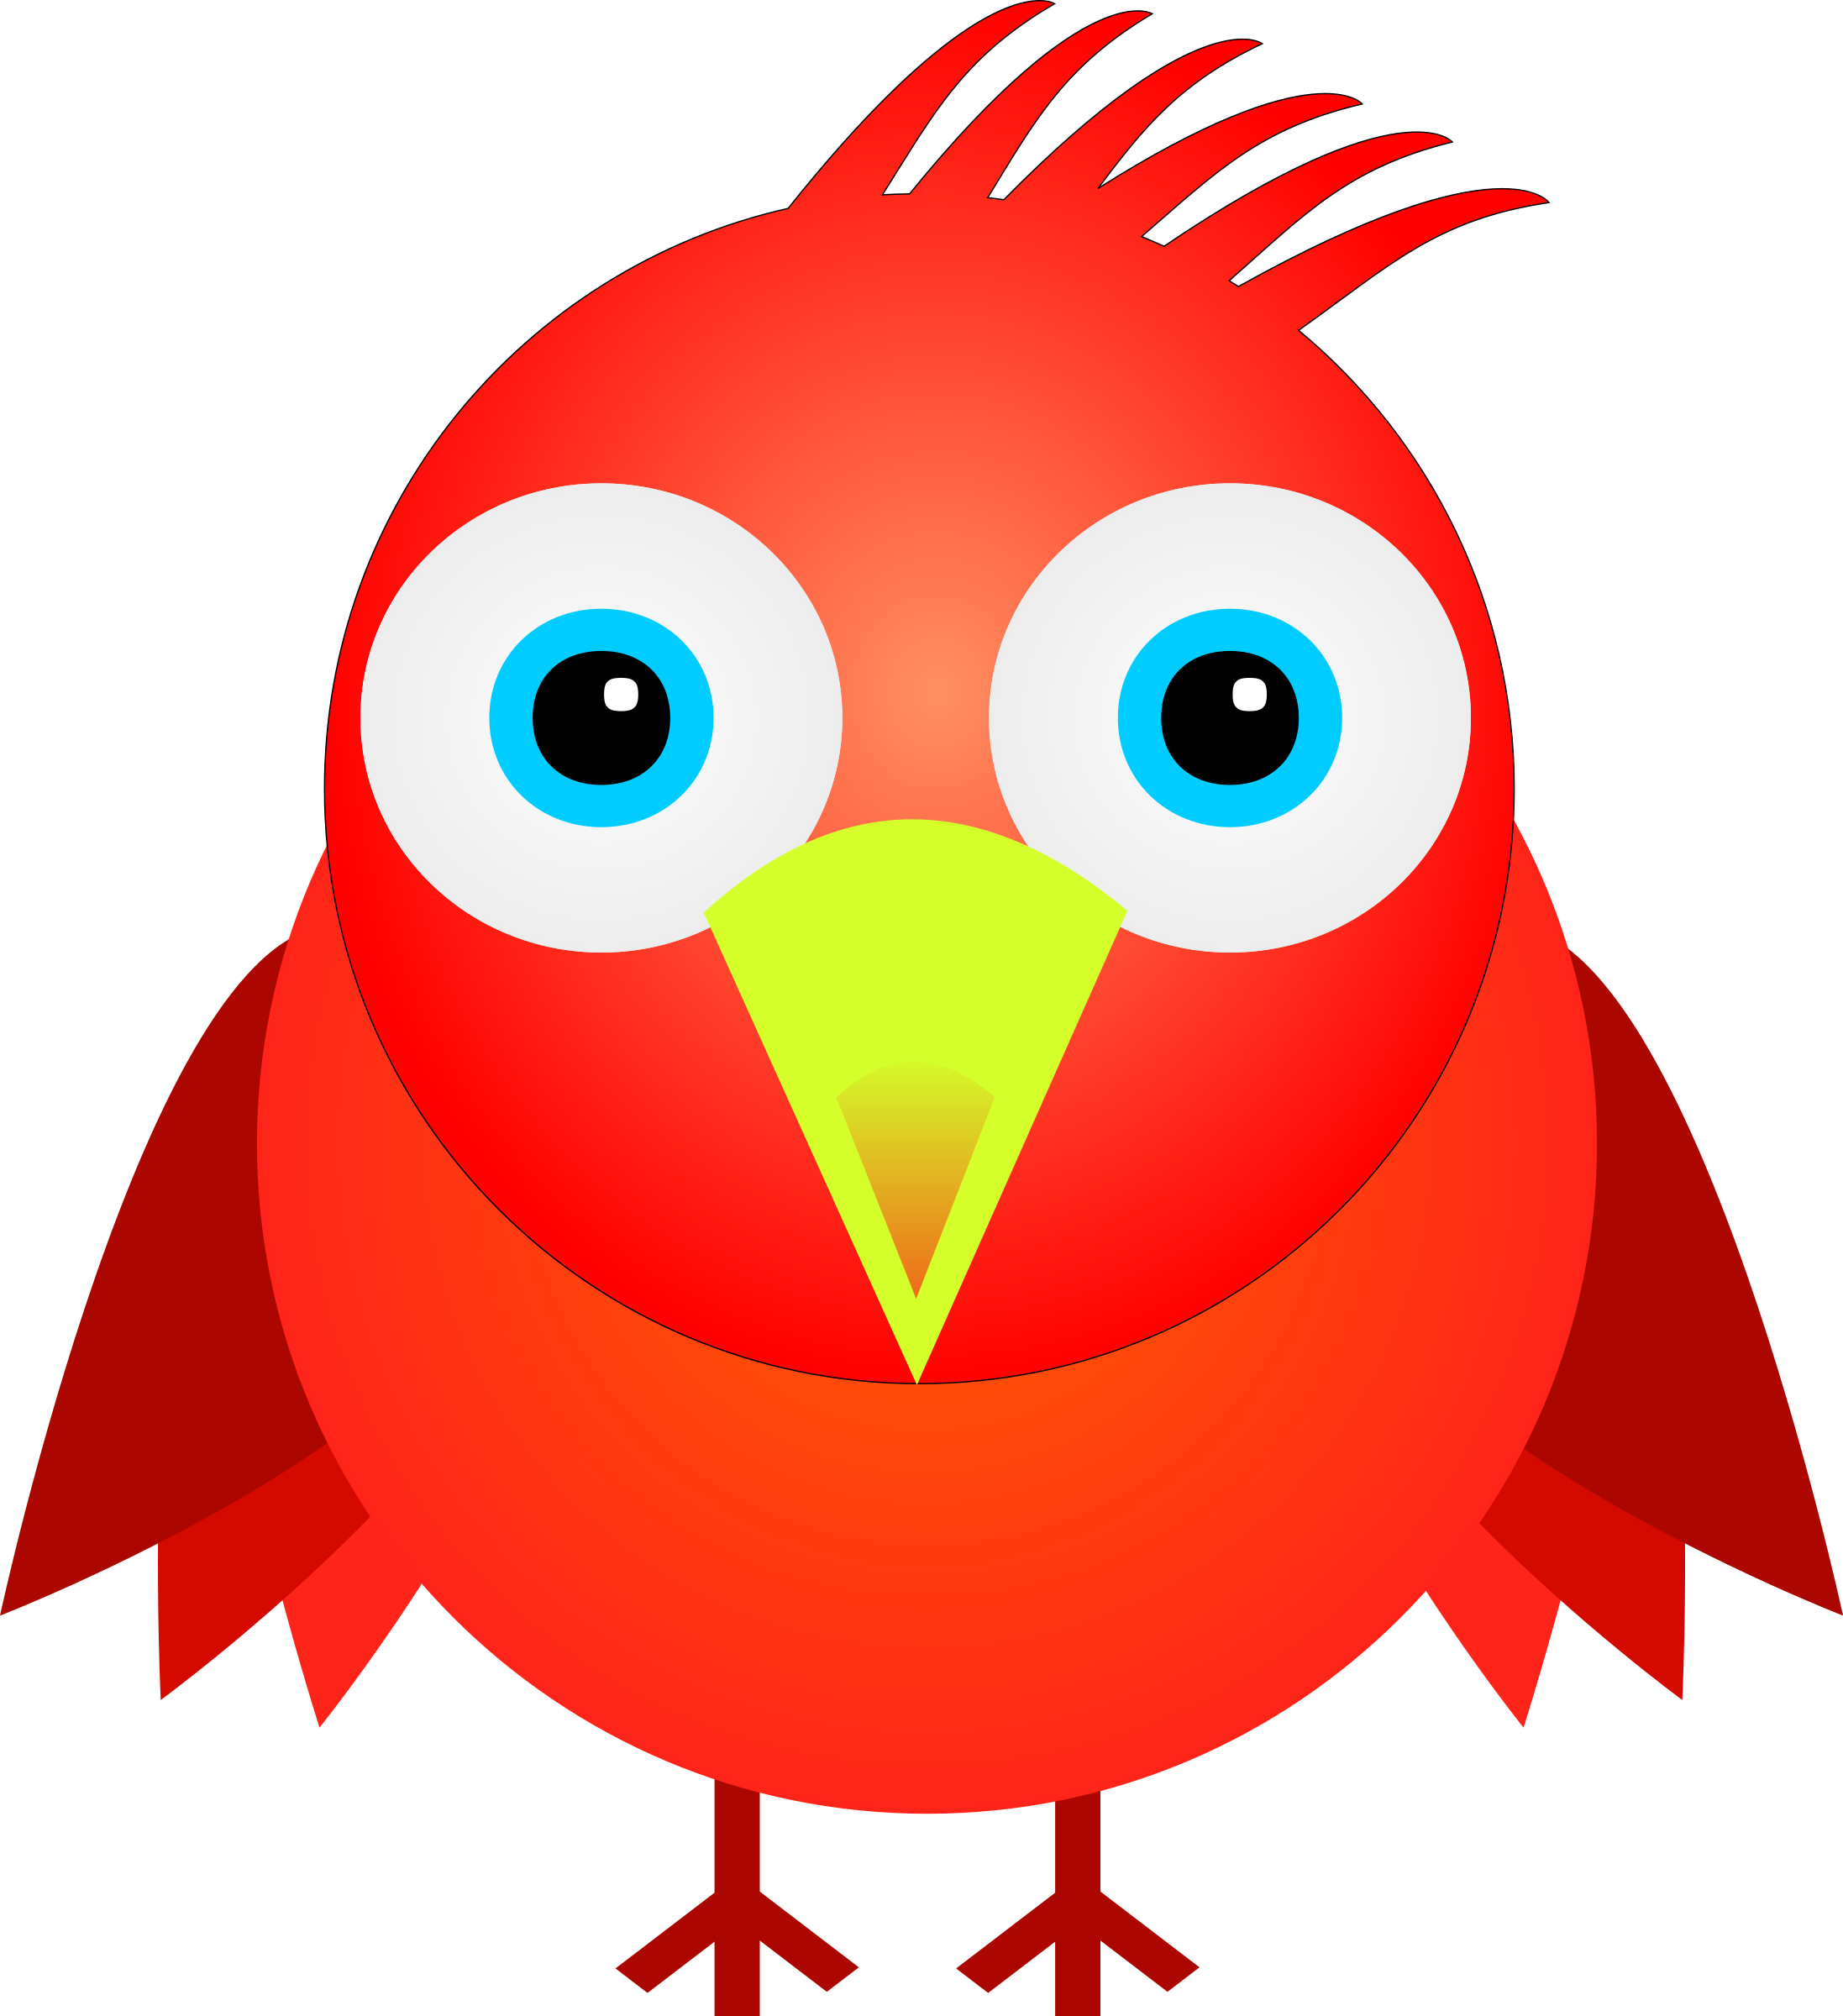 vector download Logs clipart bird. Fluffy icons png free.